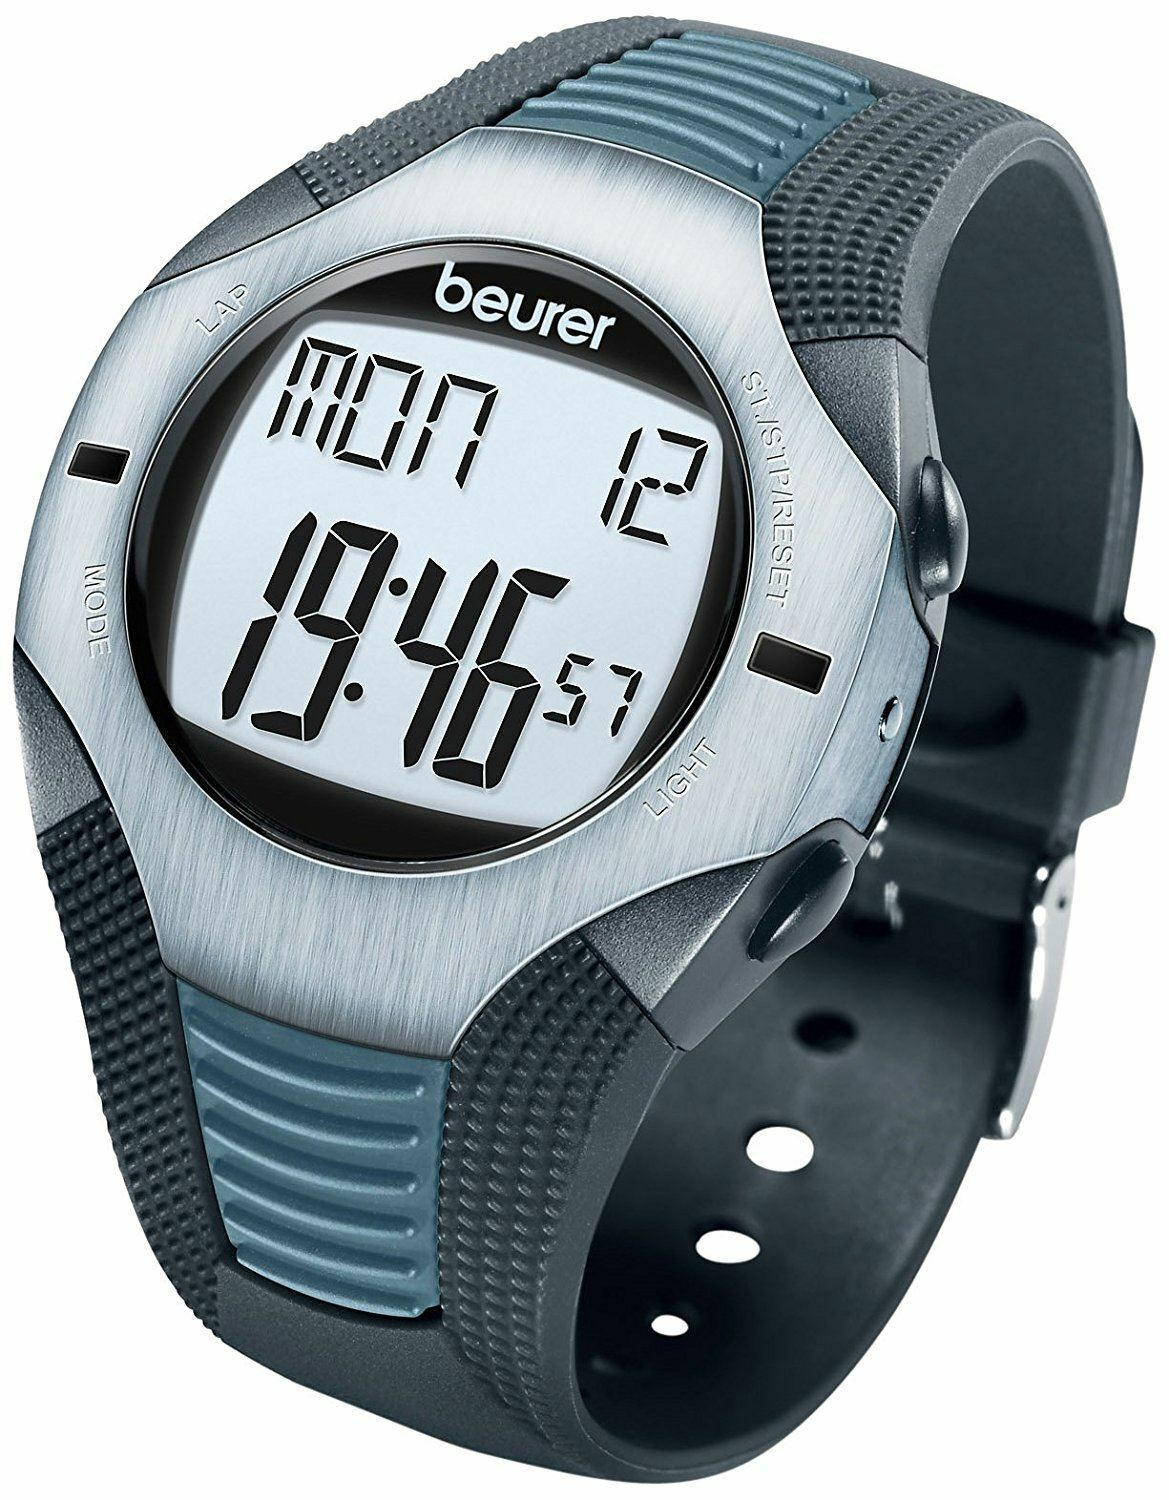 Beurer PM26 Heart Rate Monitor Sports Fitness Exercise Watch S Steel Weight Loss